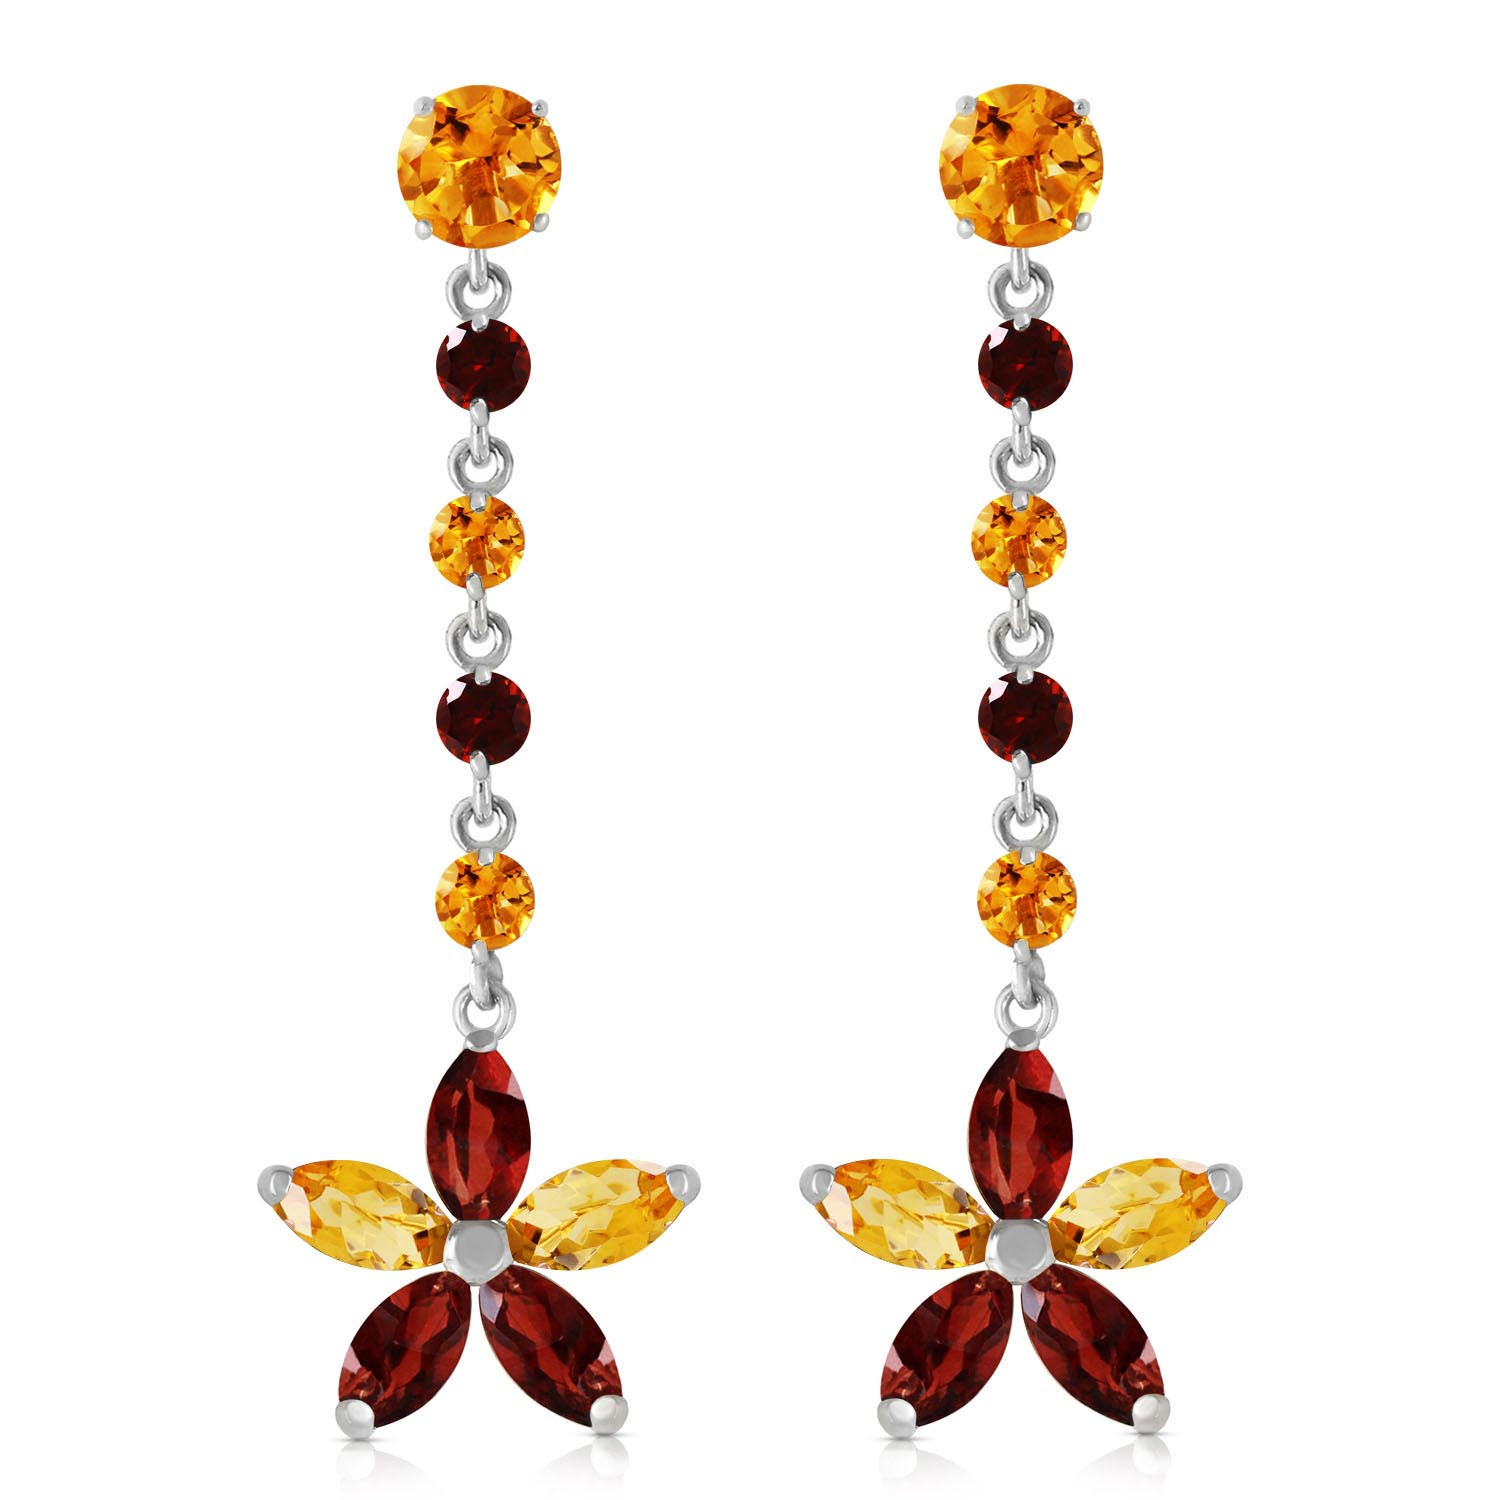 Citrine and Garnet Daisy Chain Drop Earrings 4.8ctw in 14K White Gold